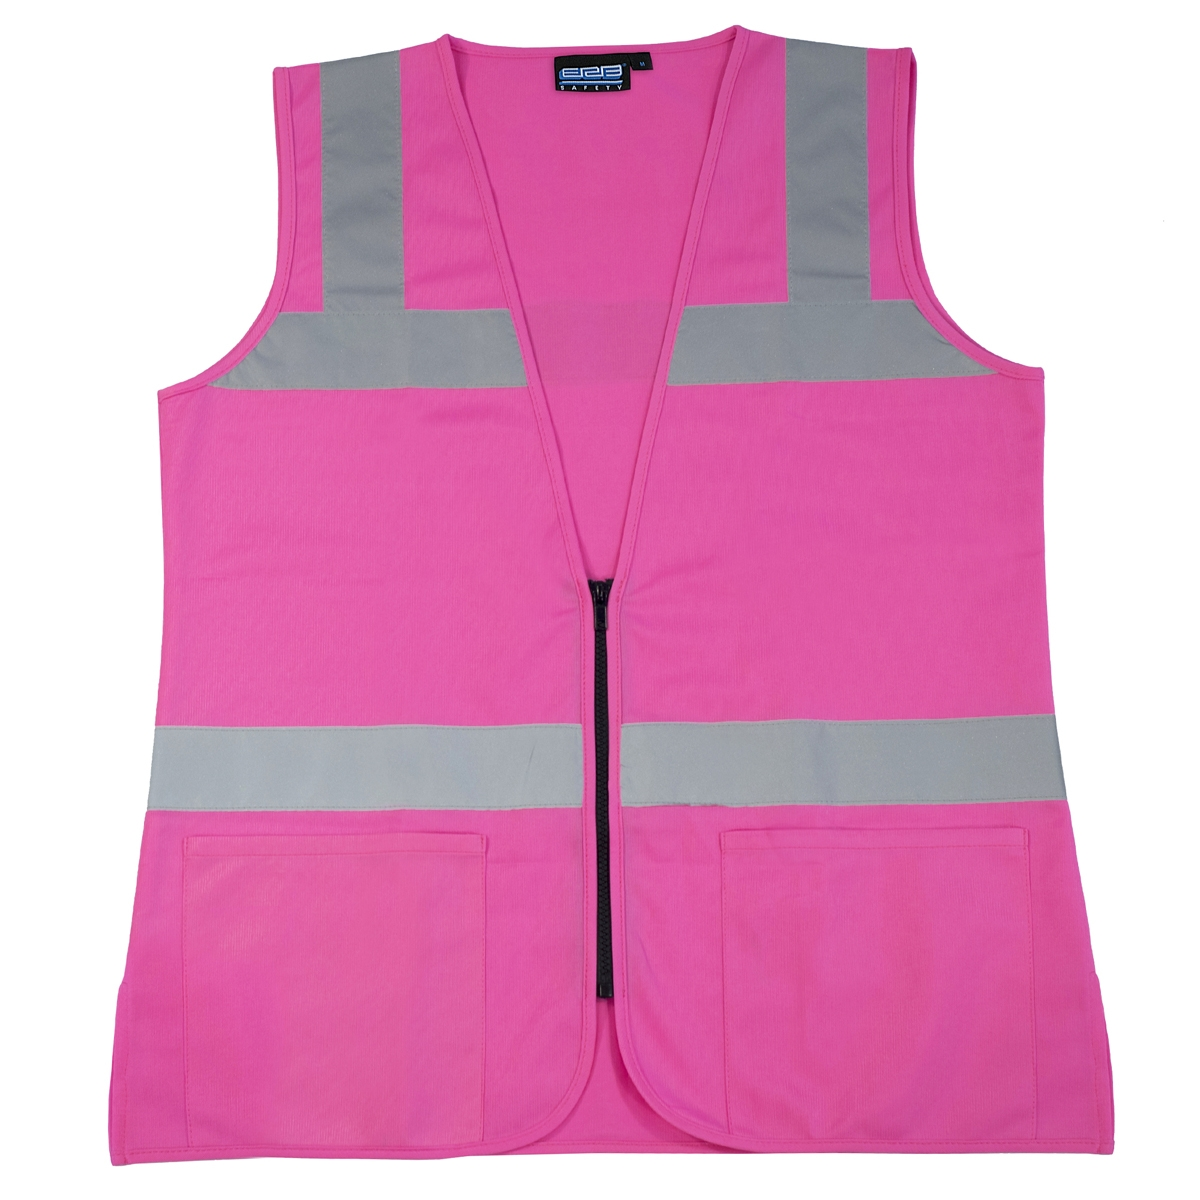 Womens Bright Pink Fitted Safety Vest Small 3xl Charm